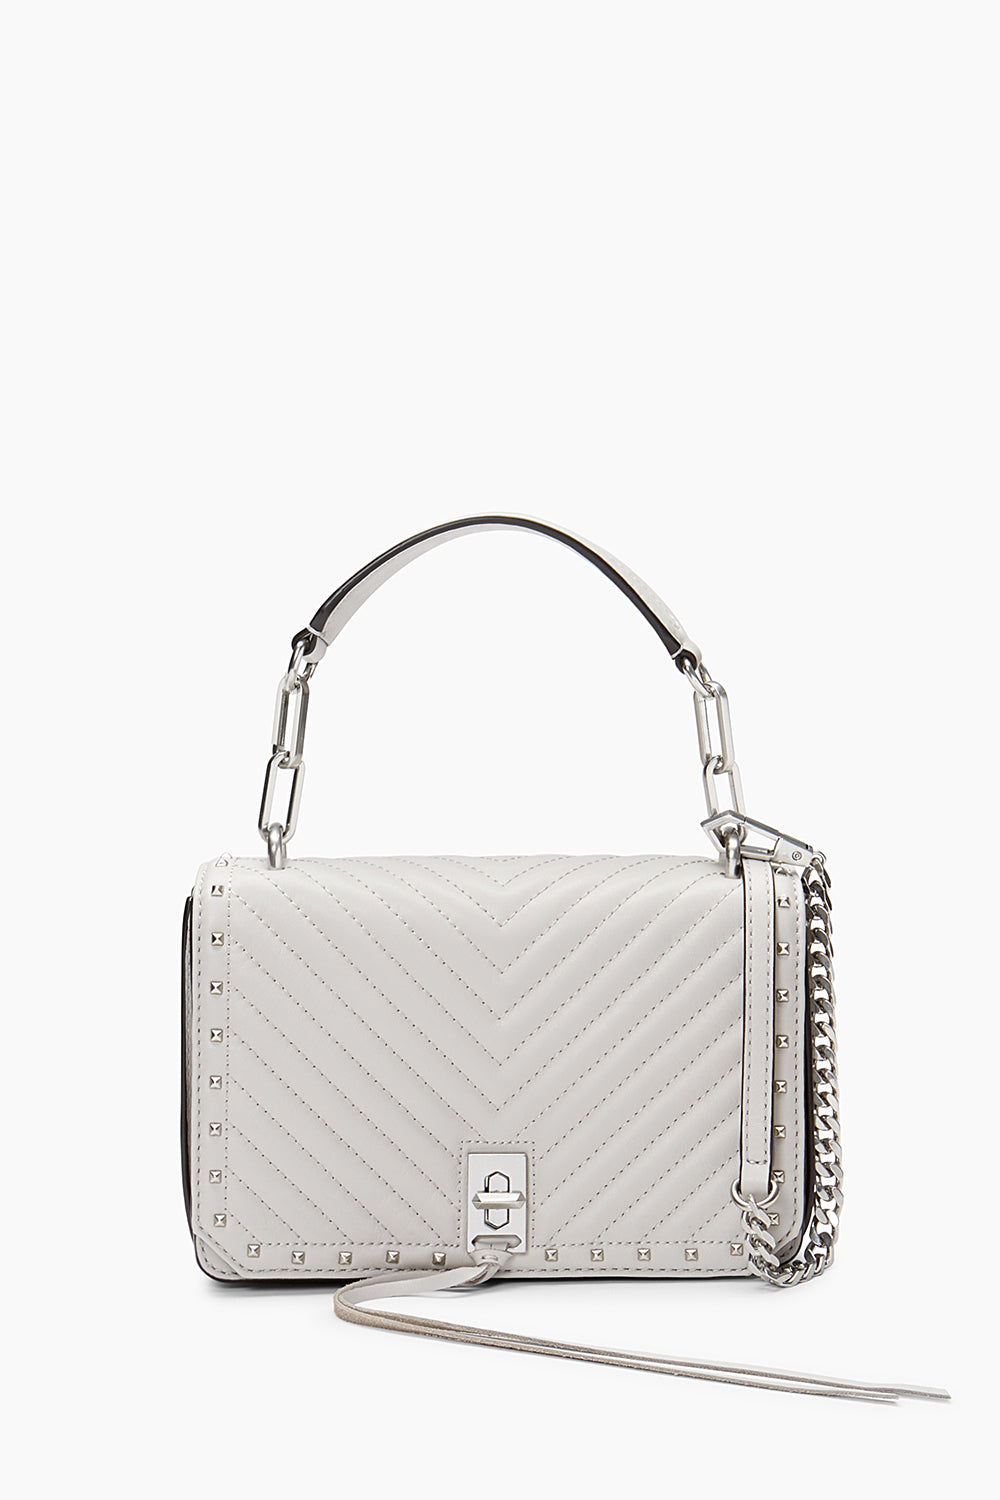 White Becky bag Rebecca Minkoff For Cheap Blfagr